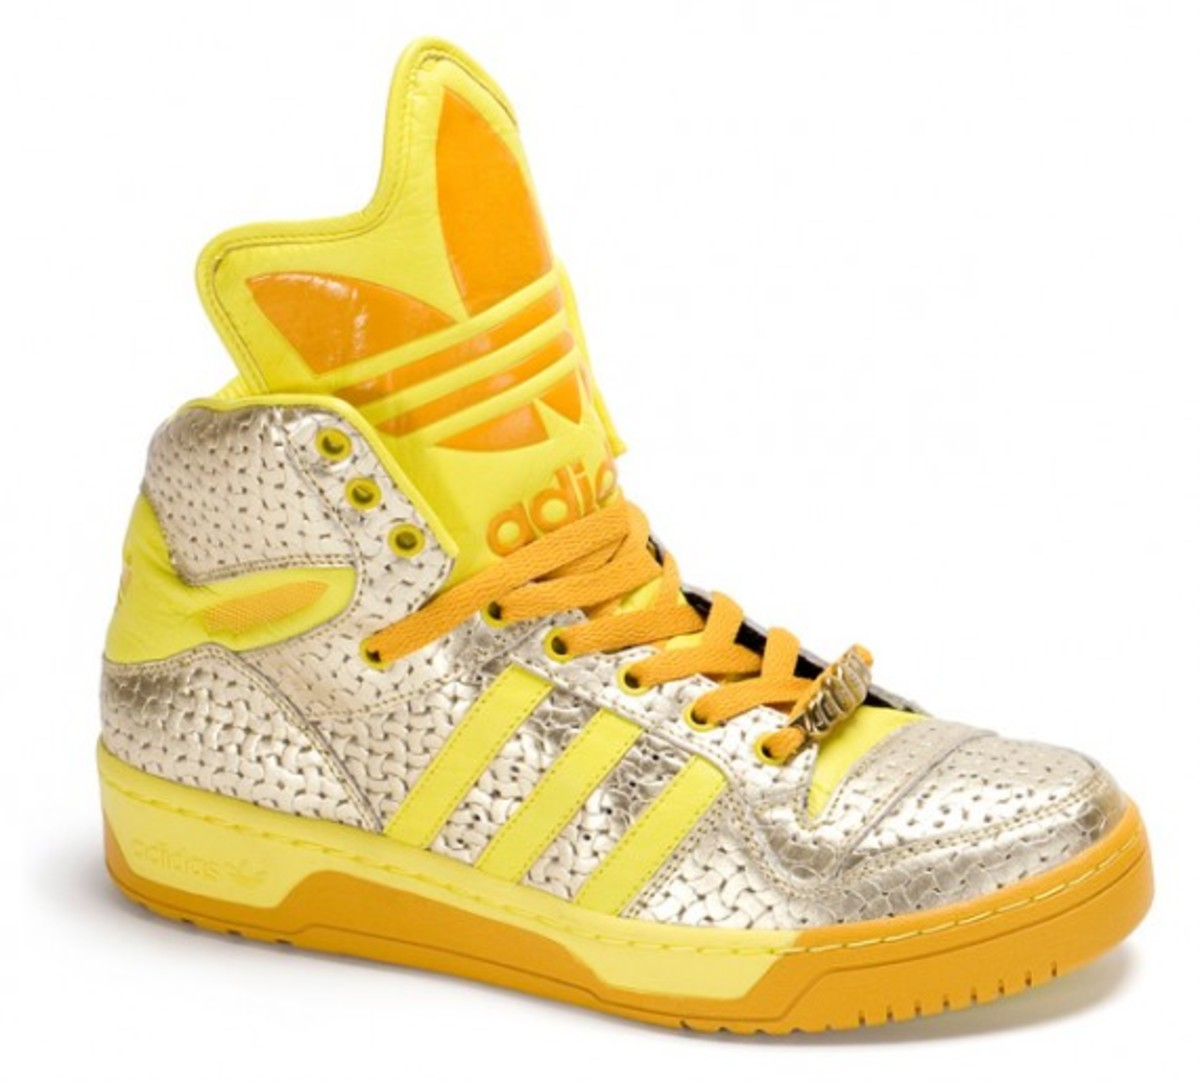 jeremy_scott_adidas_originals_obyo_ss10_footwear_6